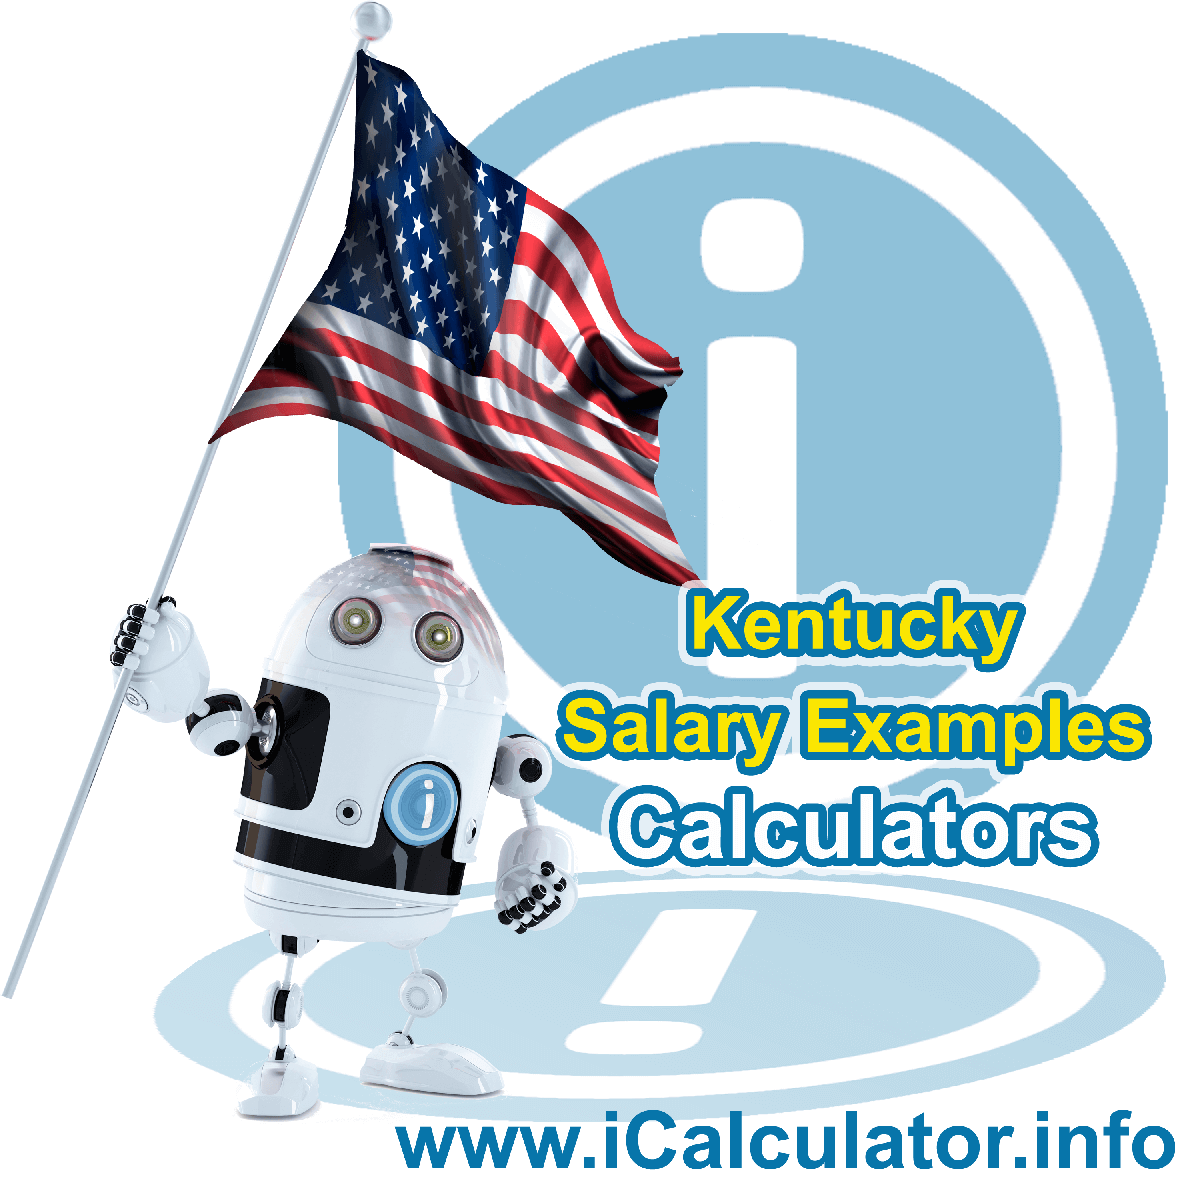 Kentucky Salary Example for $70.00 in 2020 | iCalculator | $70.00 salary example for employee and employer paying Kentucky State tincome taxes. Detailed salary after tax calculation including Kentucky State Tax, Federal State Tax, Medicare Deductions, Social Security, Capital Gains and other income tax and salary deductions complete with supporting Kentucky state tax tables